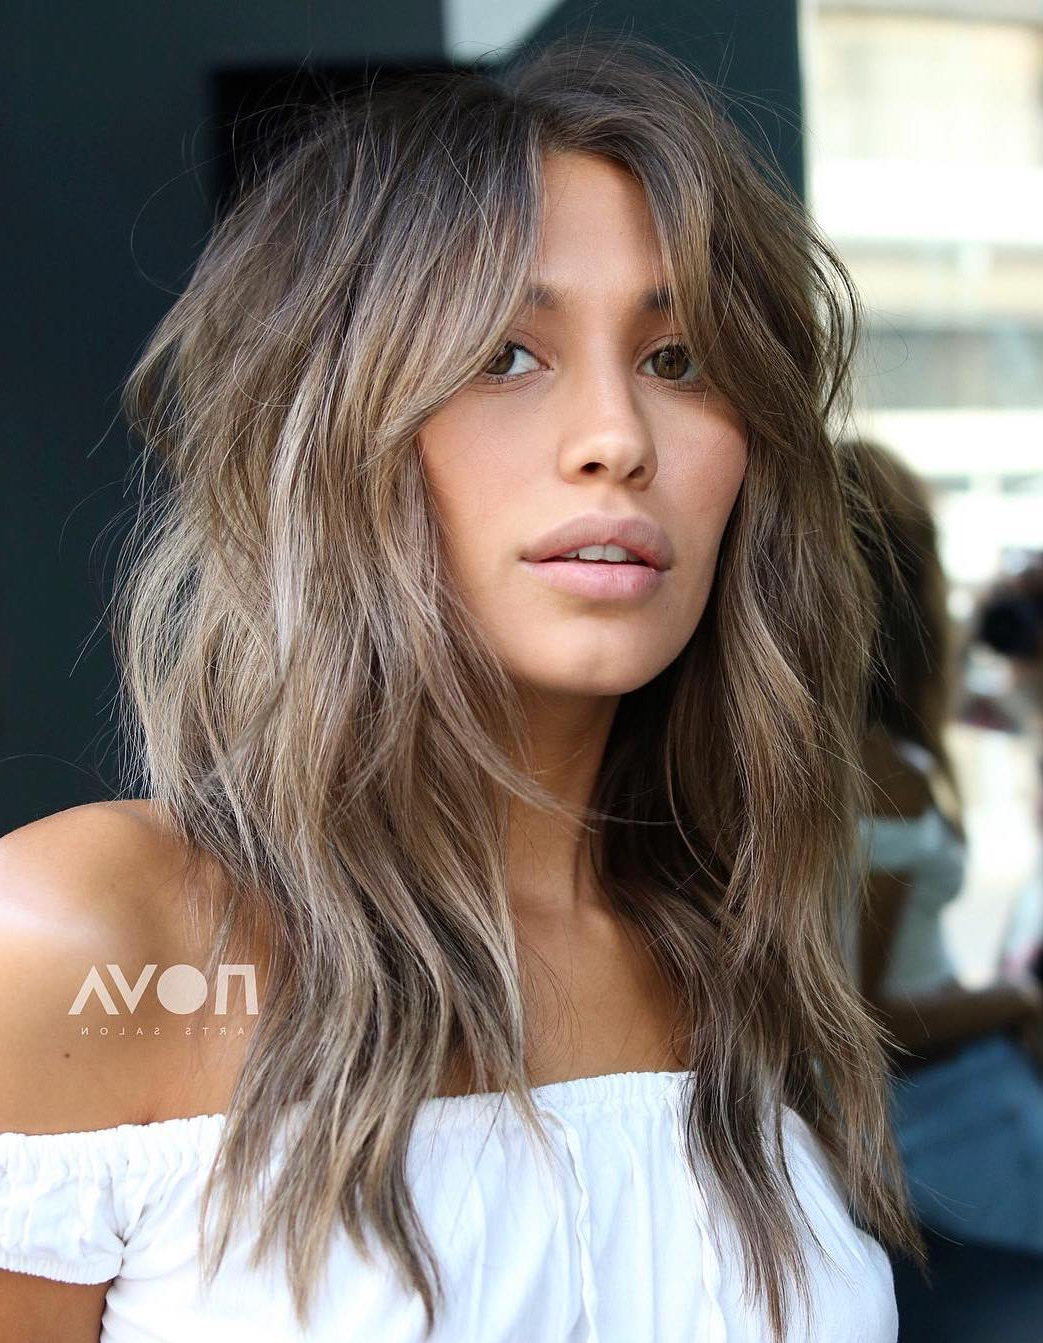 40 Modern Shag Haircuts For Women To Make A Splash With Fashionable Long Feathered Shag Haircuts For Fine Hair (View 17 of 20)